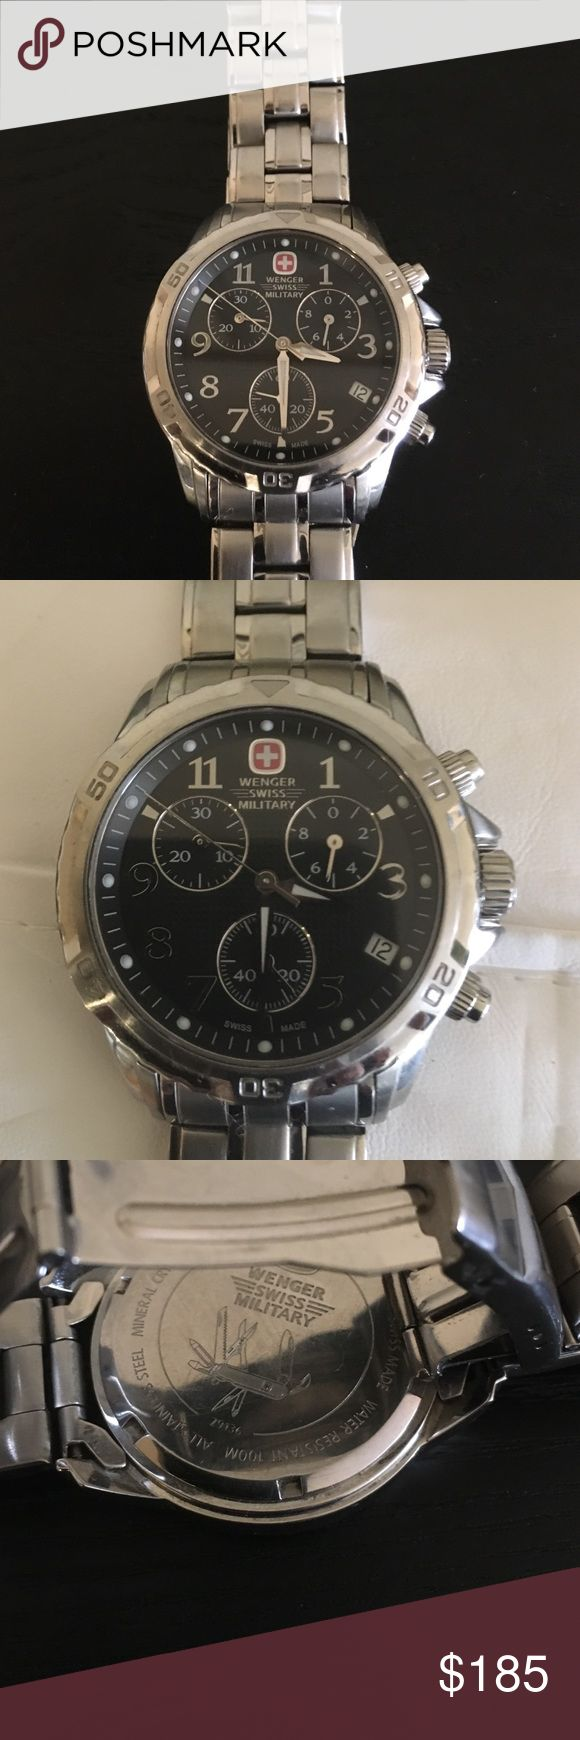 Excellent condition  Swiss military watch This is excellent condition Wenger Swiss Military men brigade stainless watch.Chronograph watch,waterproof 79136,vintage Swiss Accessories Watches